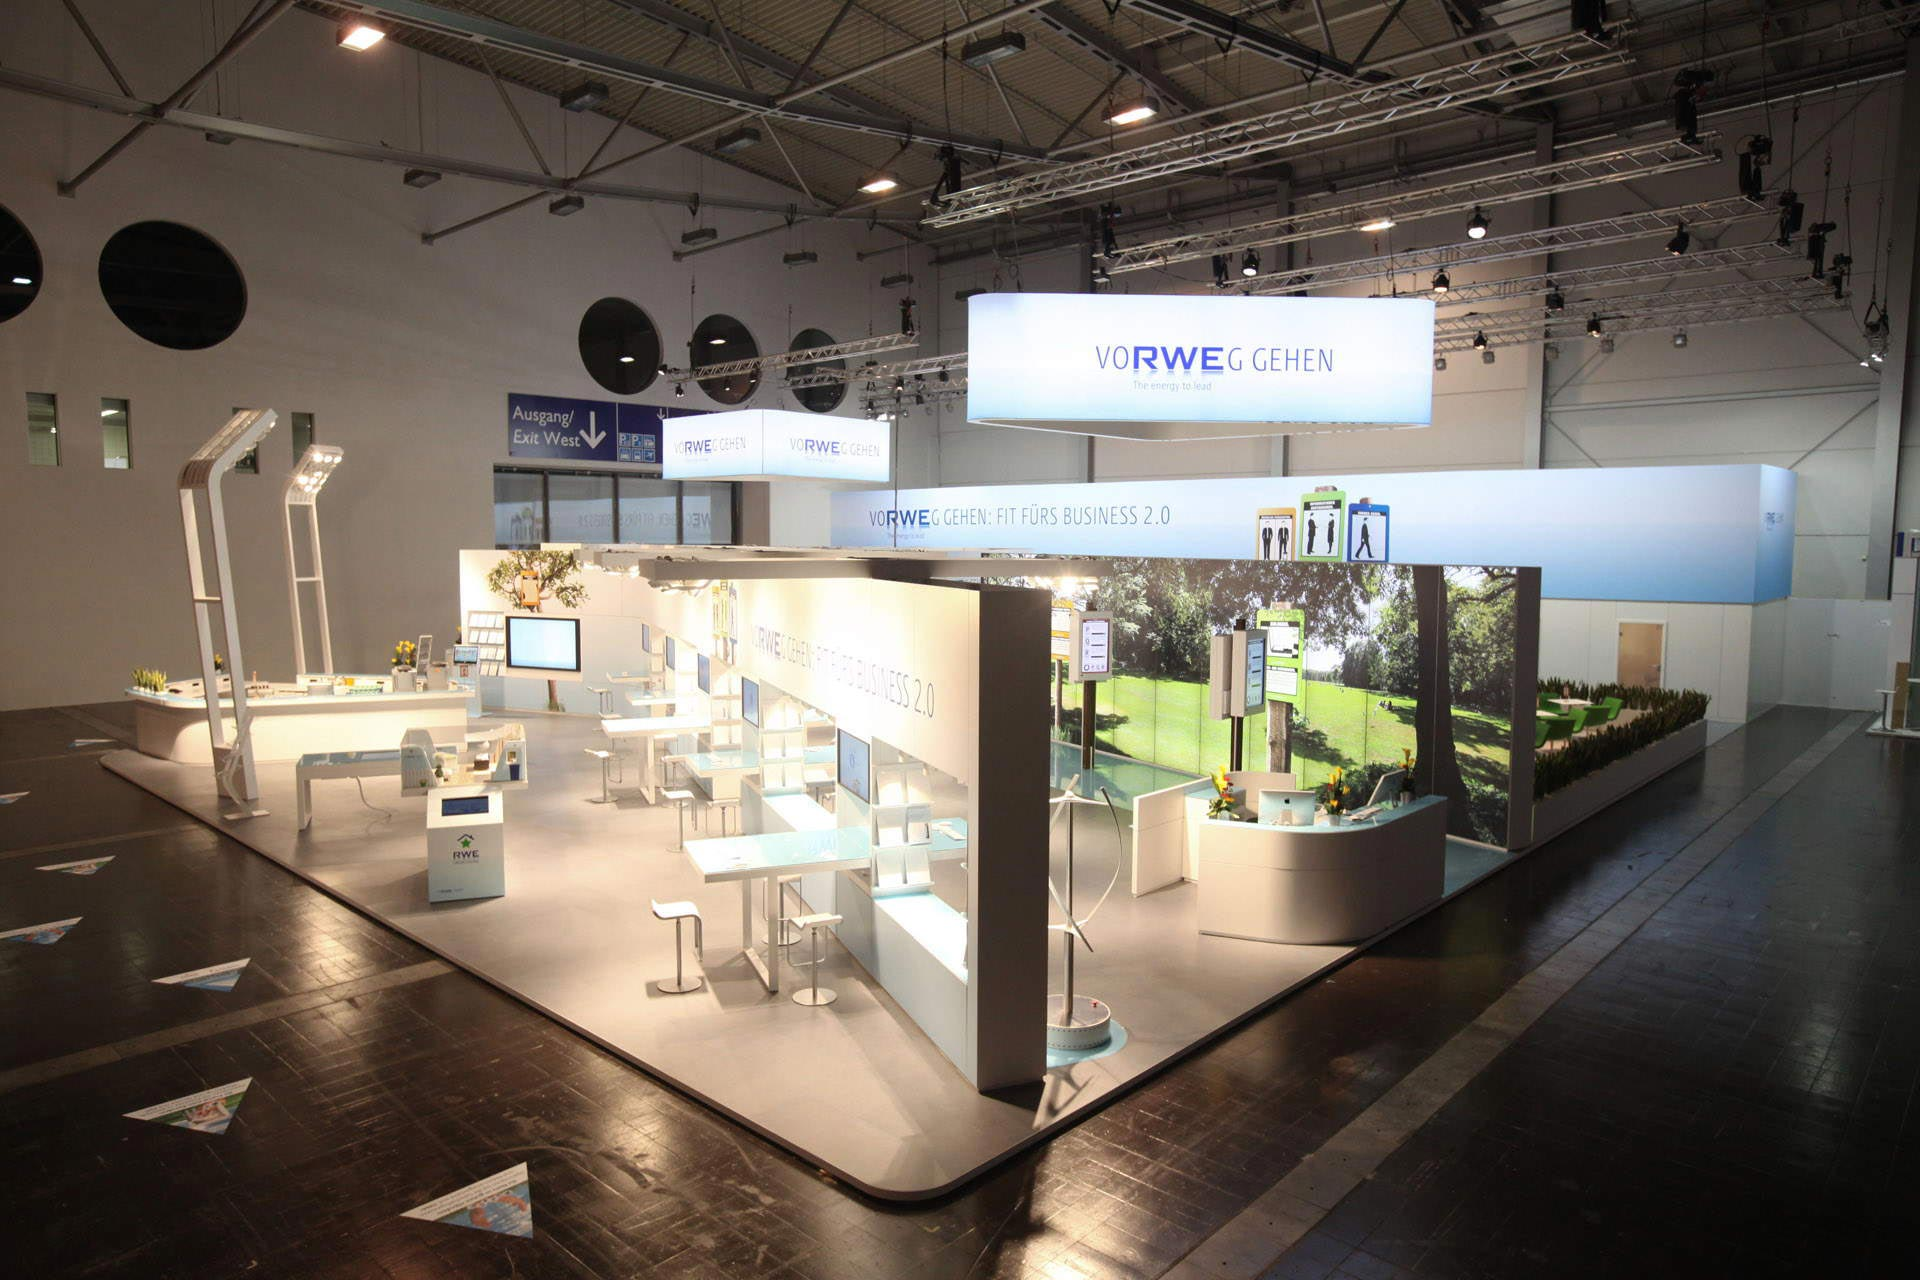 Rwe messe interior brand design in der dritten dimension for Interior design messe